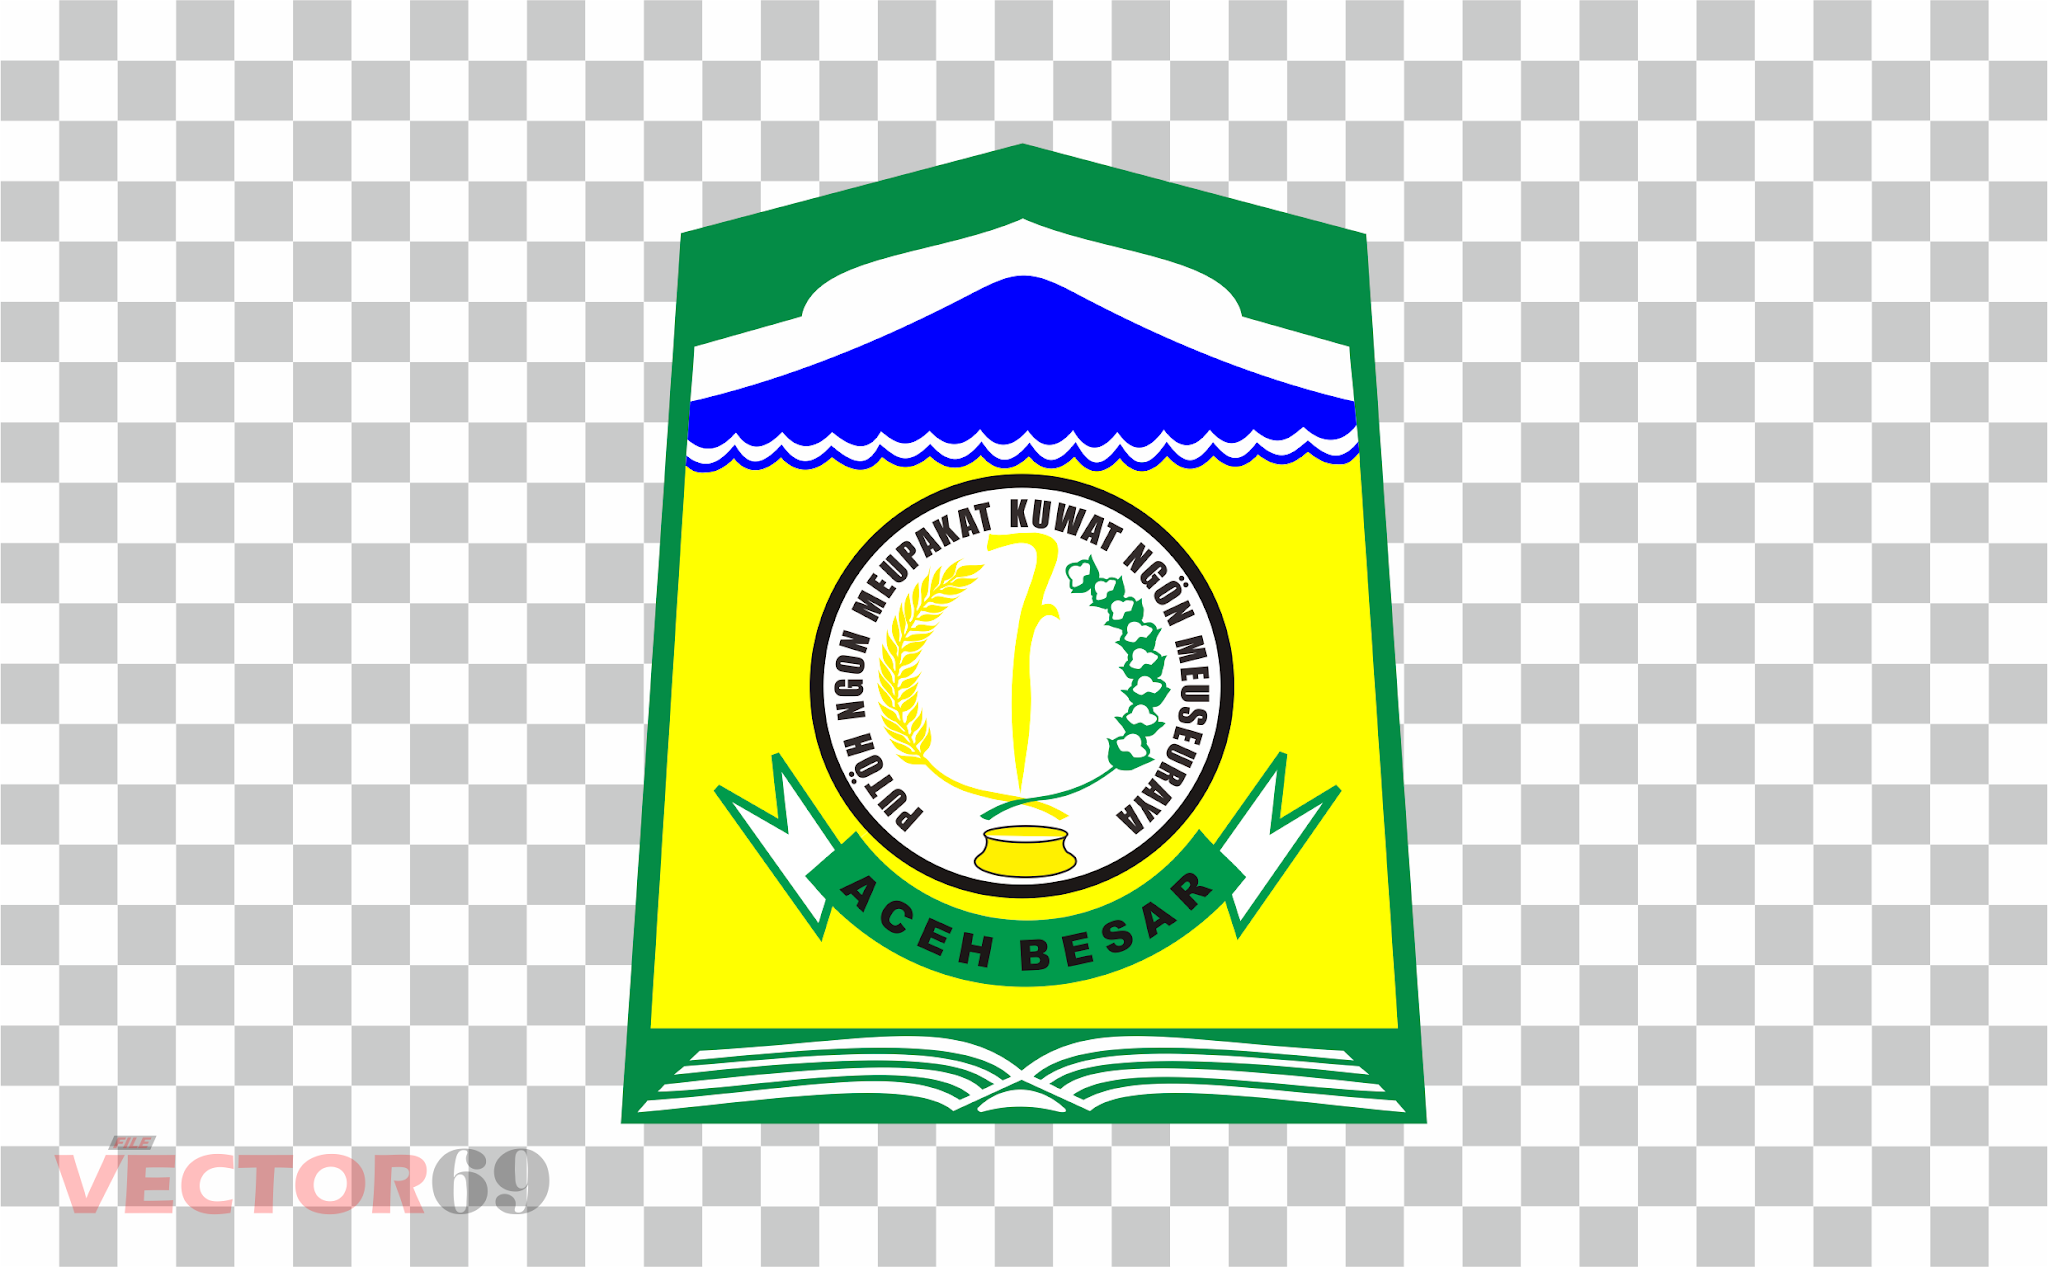 Kabupaten Aceh Besar Logo - Download Vector File PNG (Portable Network Graphics)